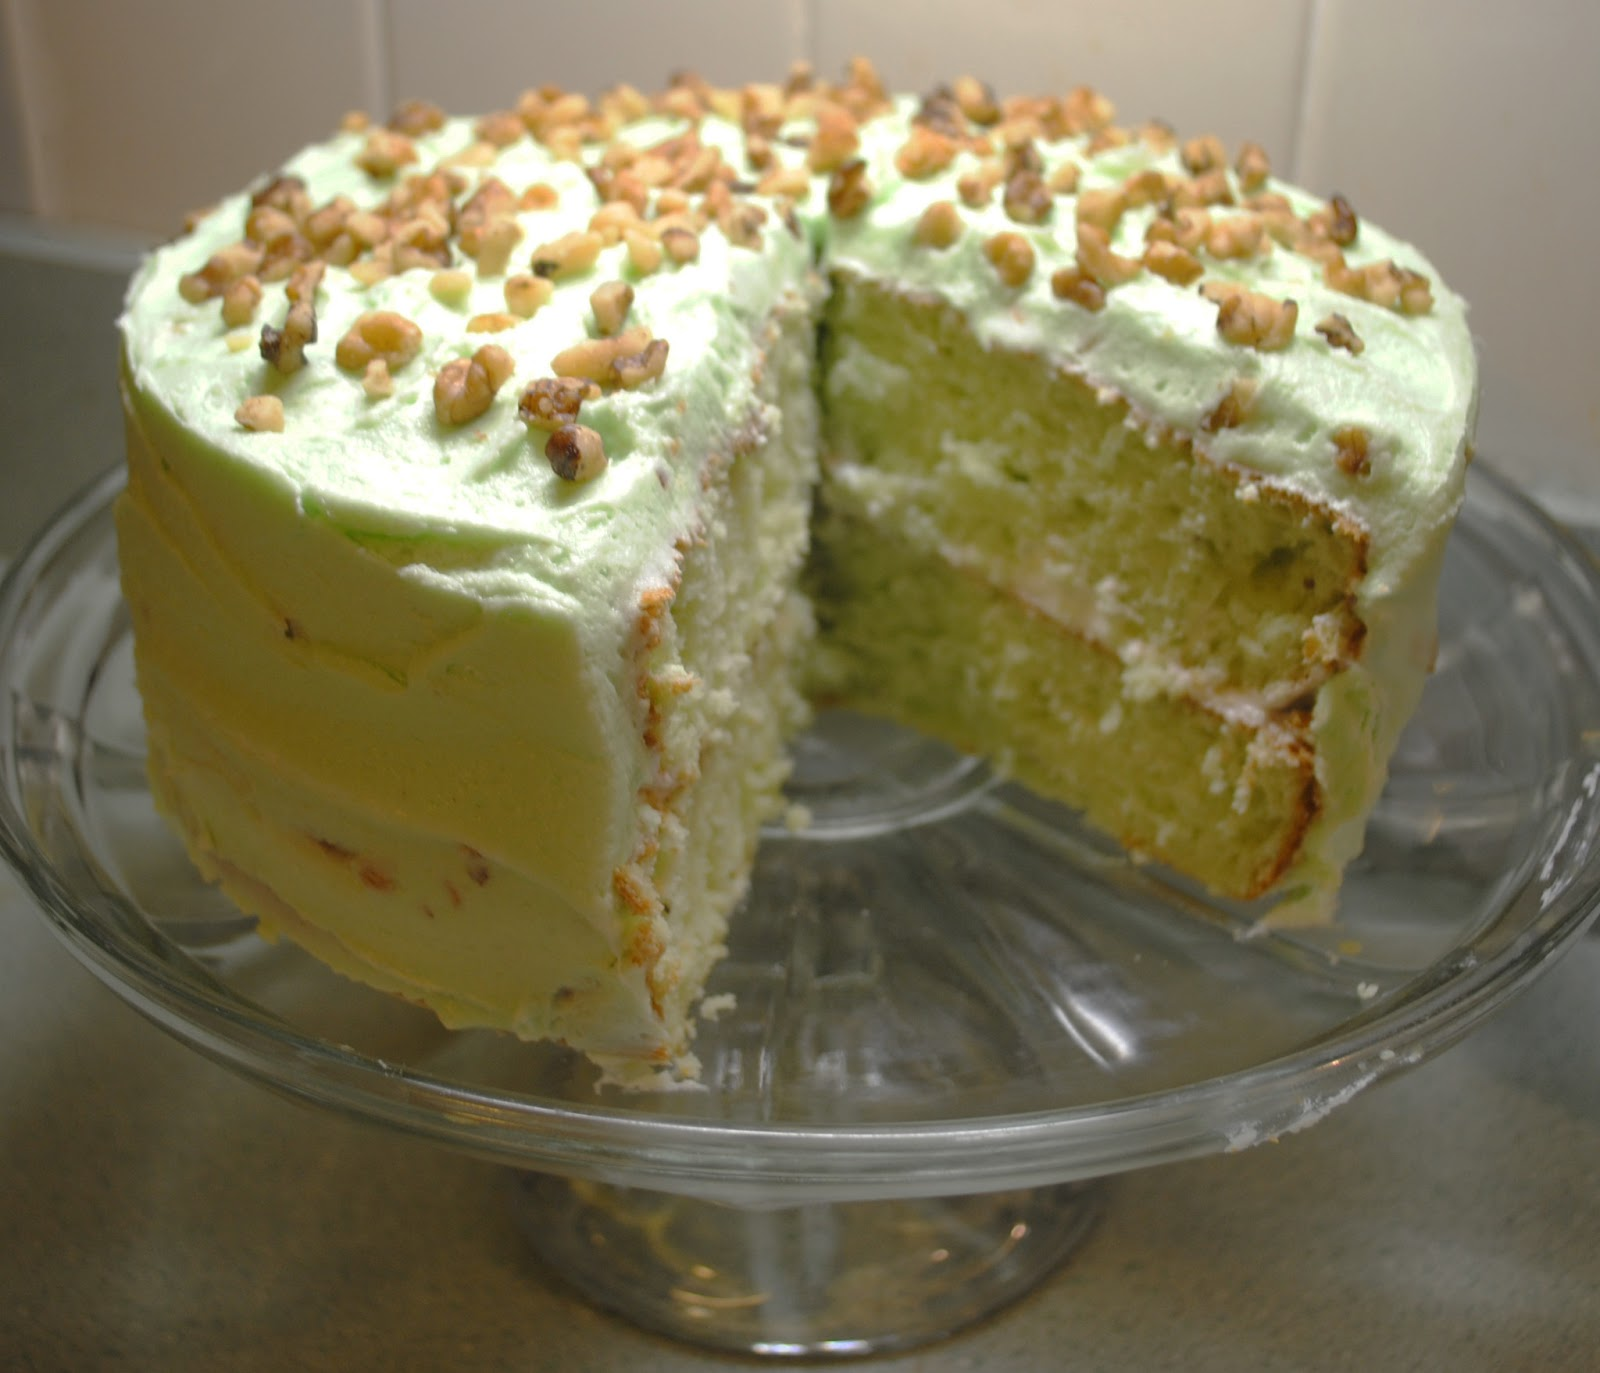 One Day at a Time: Pistachio Cake